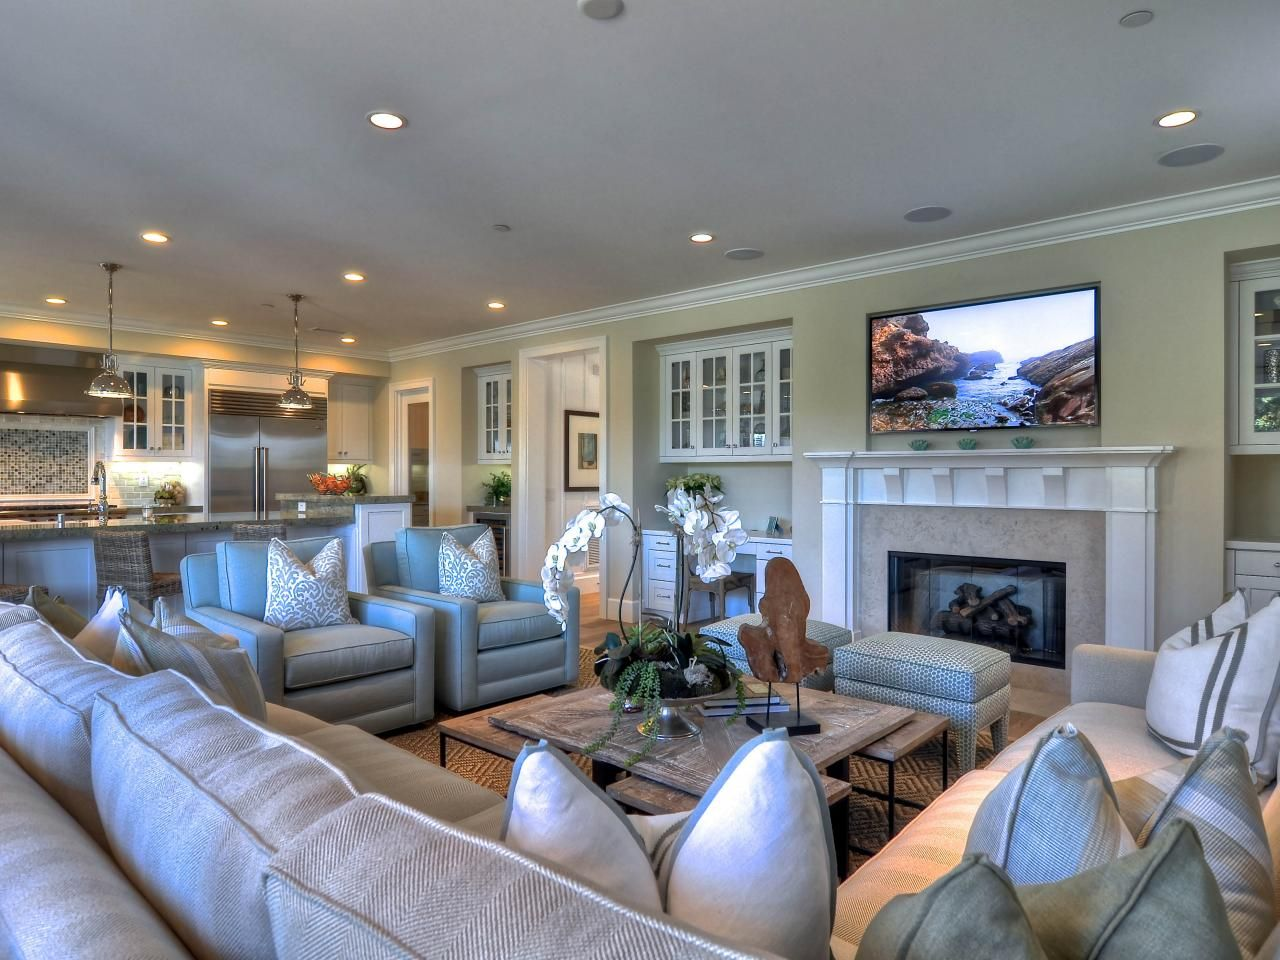 Coastal decor is found in the details in this spacious for Large family living room